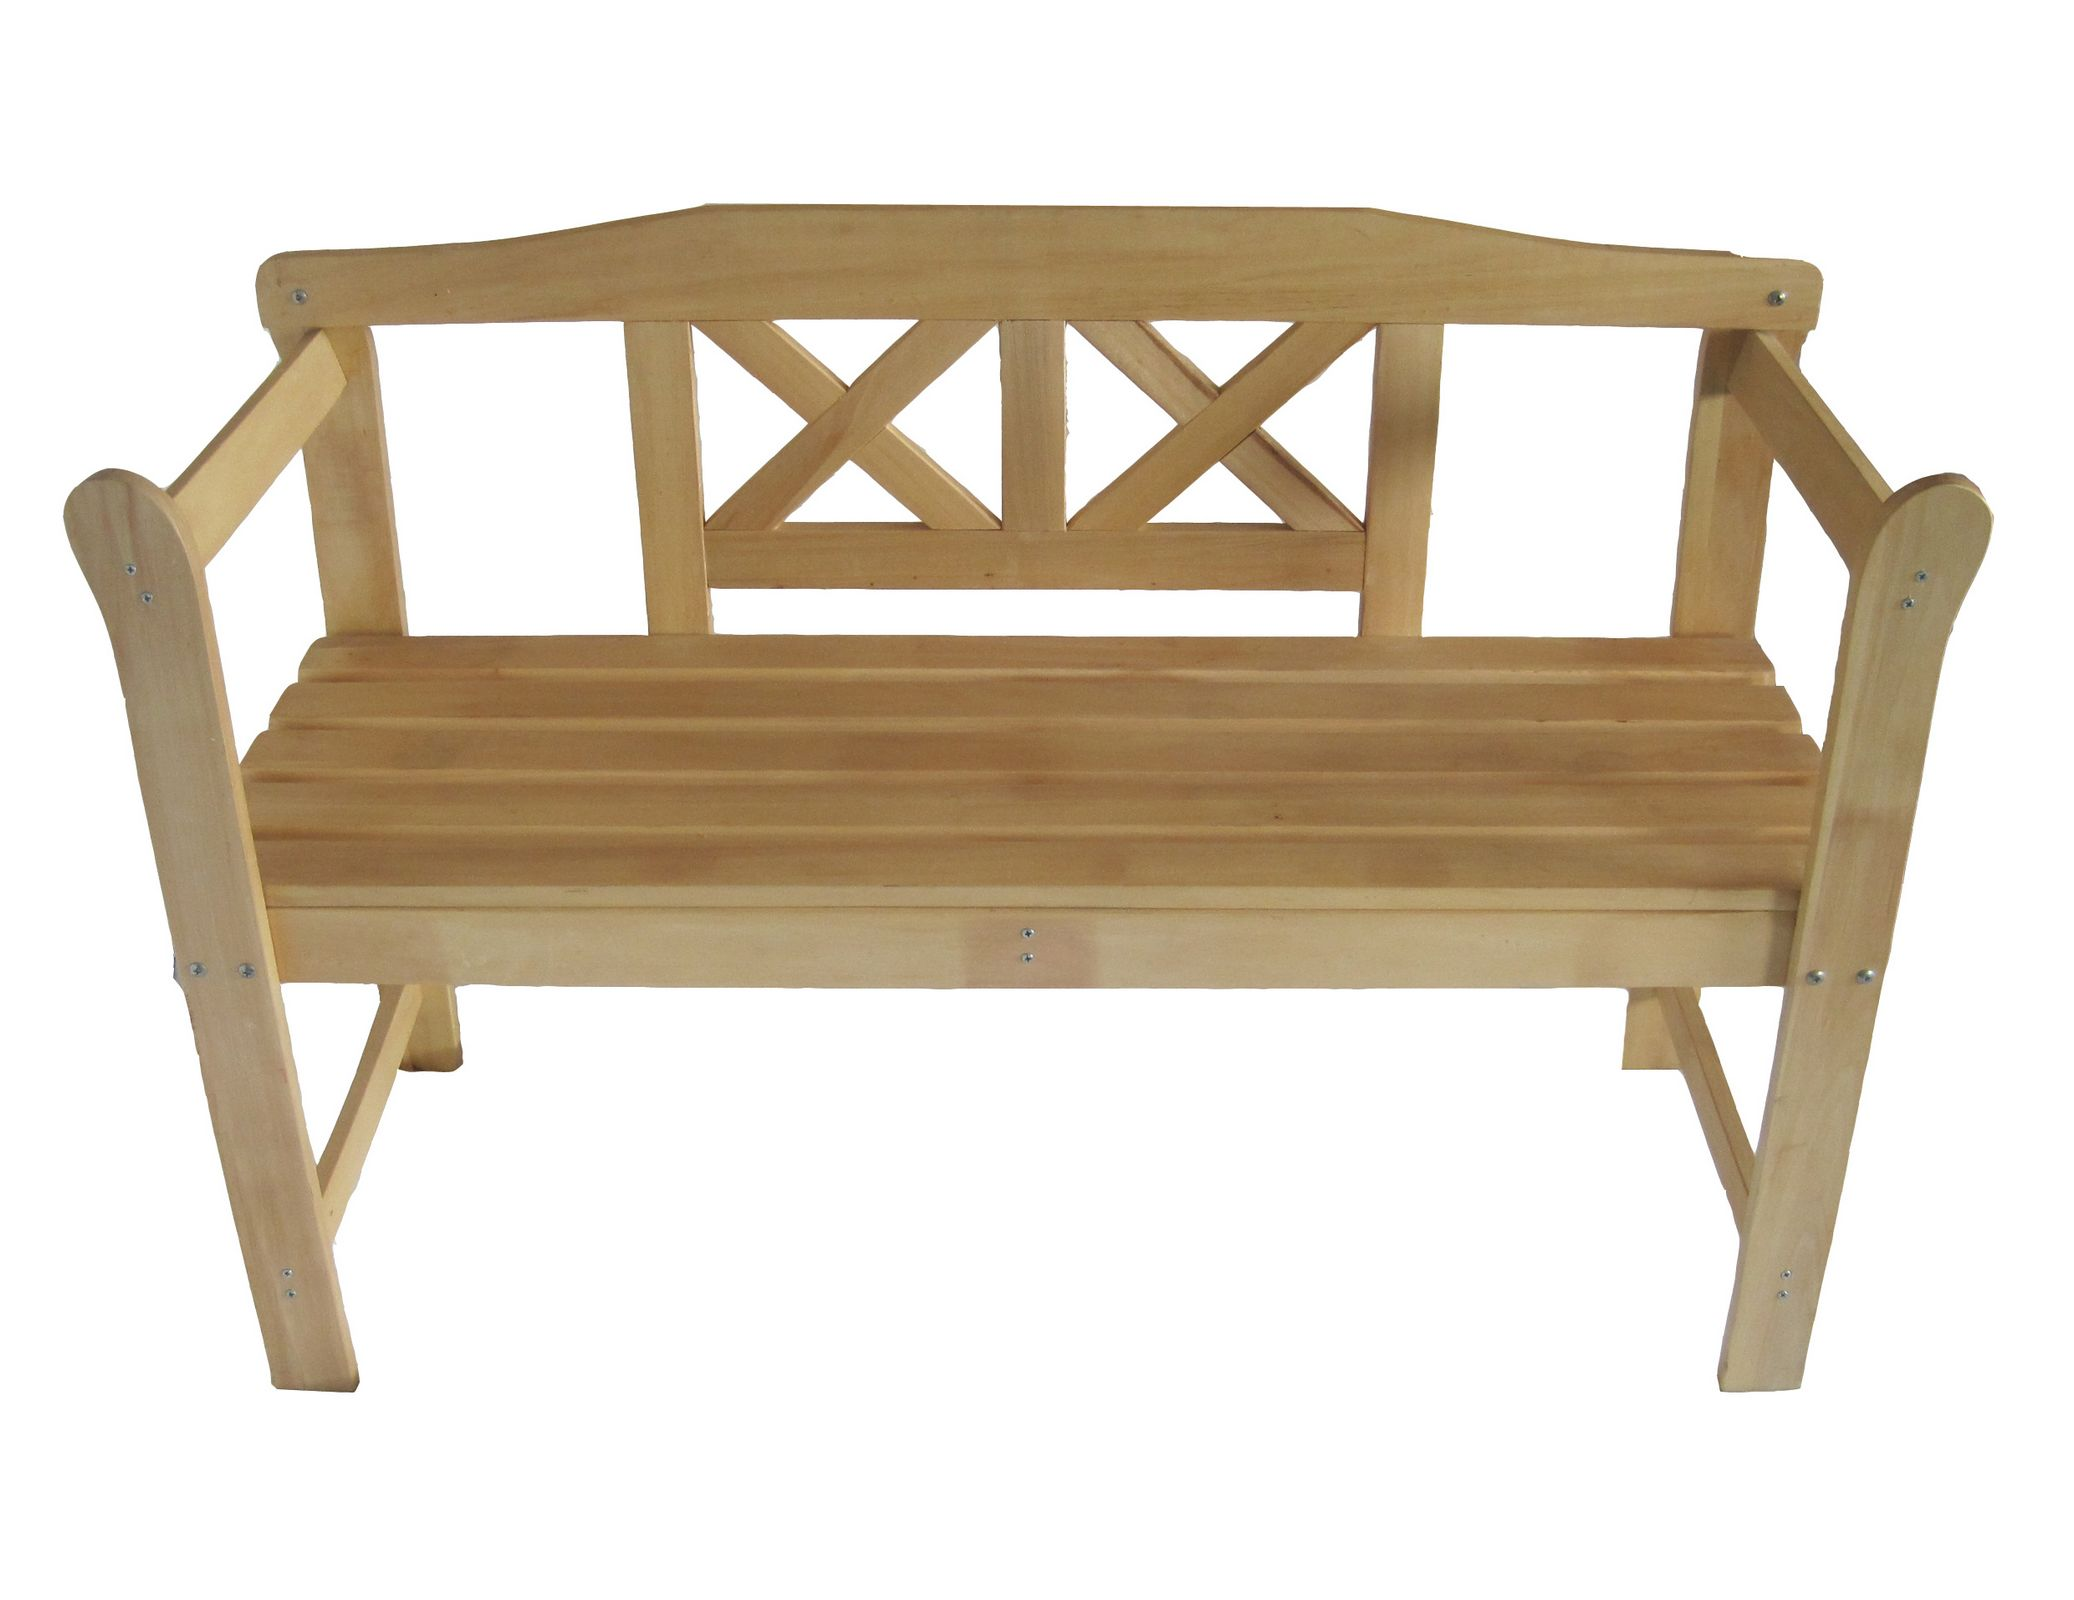 Outdoor wood chair furniture -  Wooden Bench Chair Table Outdoor Furniture Garden Patio New Thumbnail Thumbnail